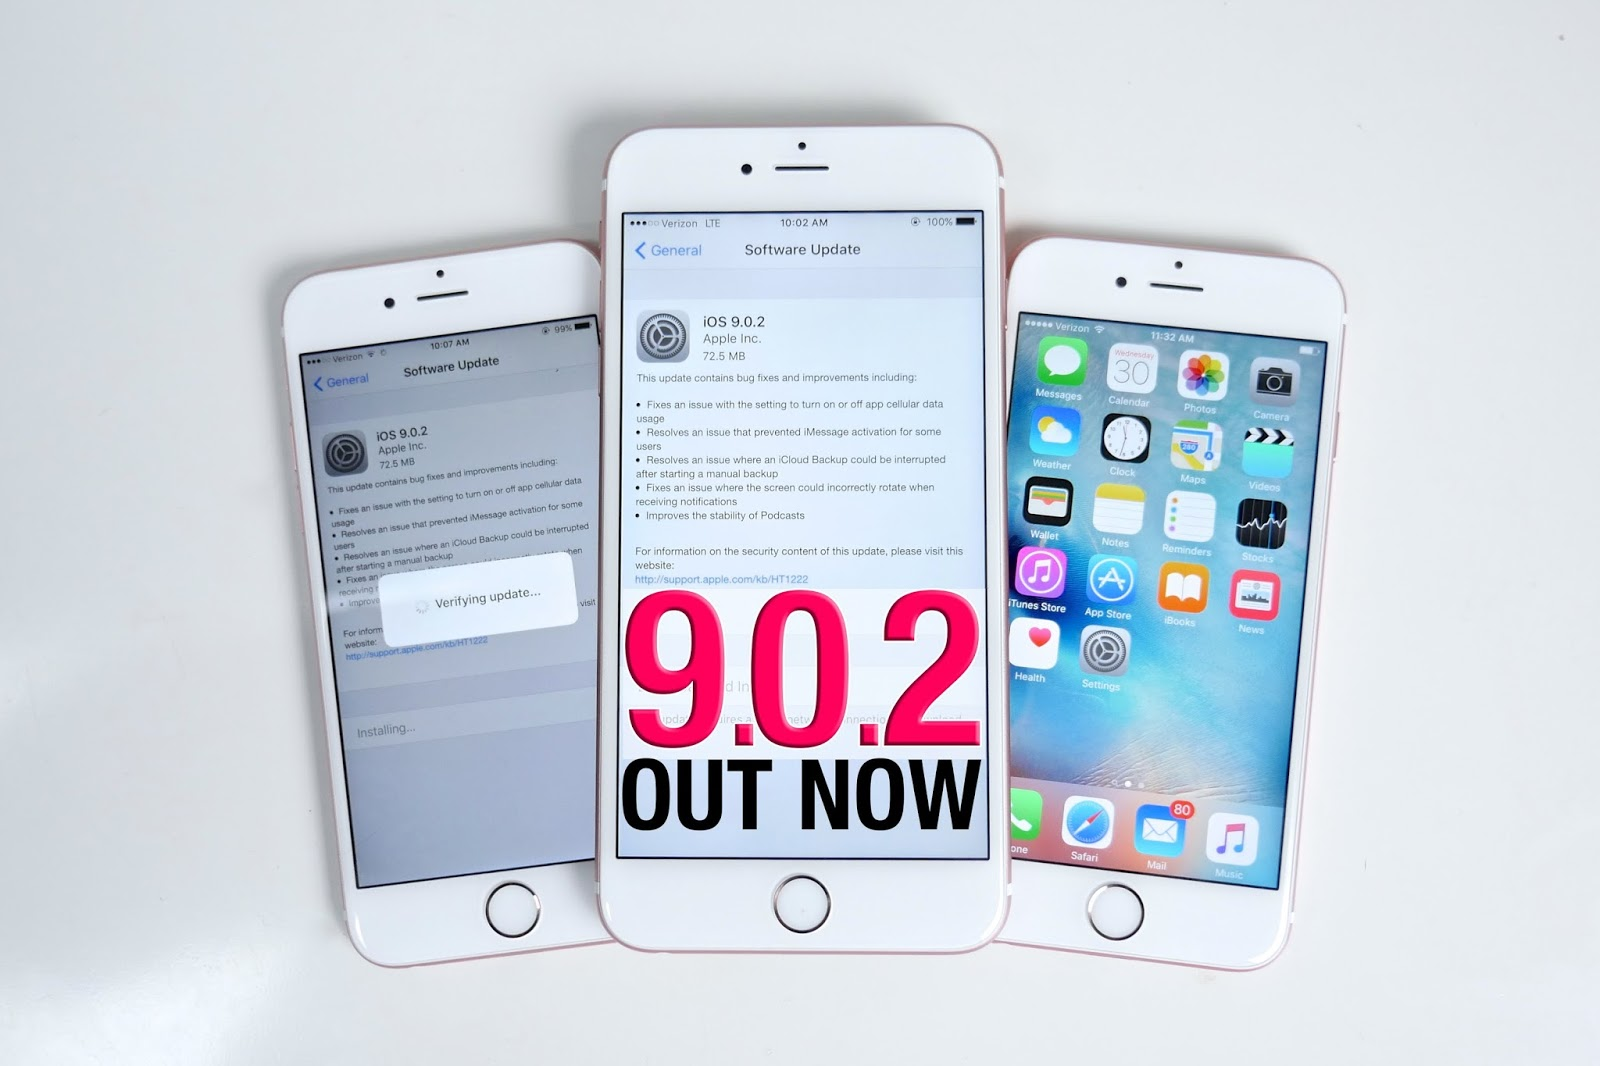 How to Jailbreak iOS 9.0 or 9.0.2 on iPhone 6S, iPads and earlier models